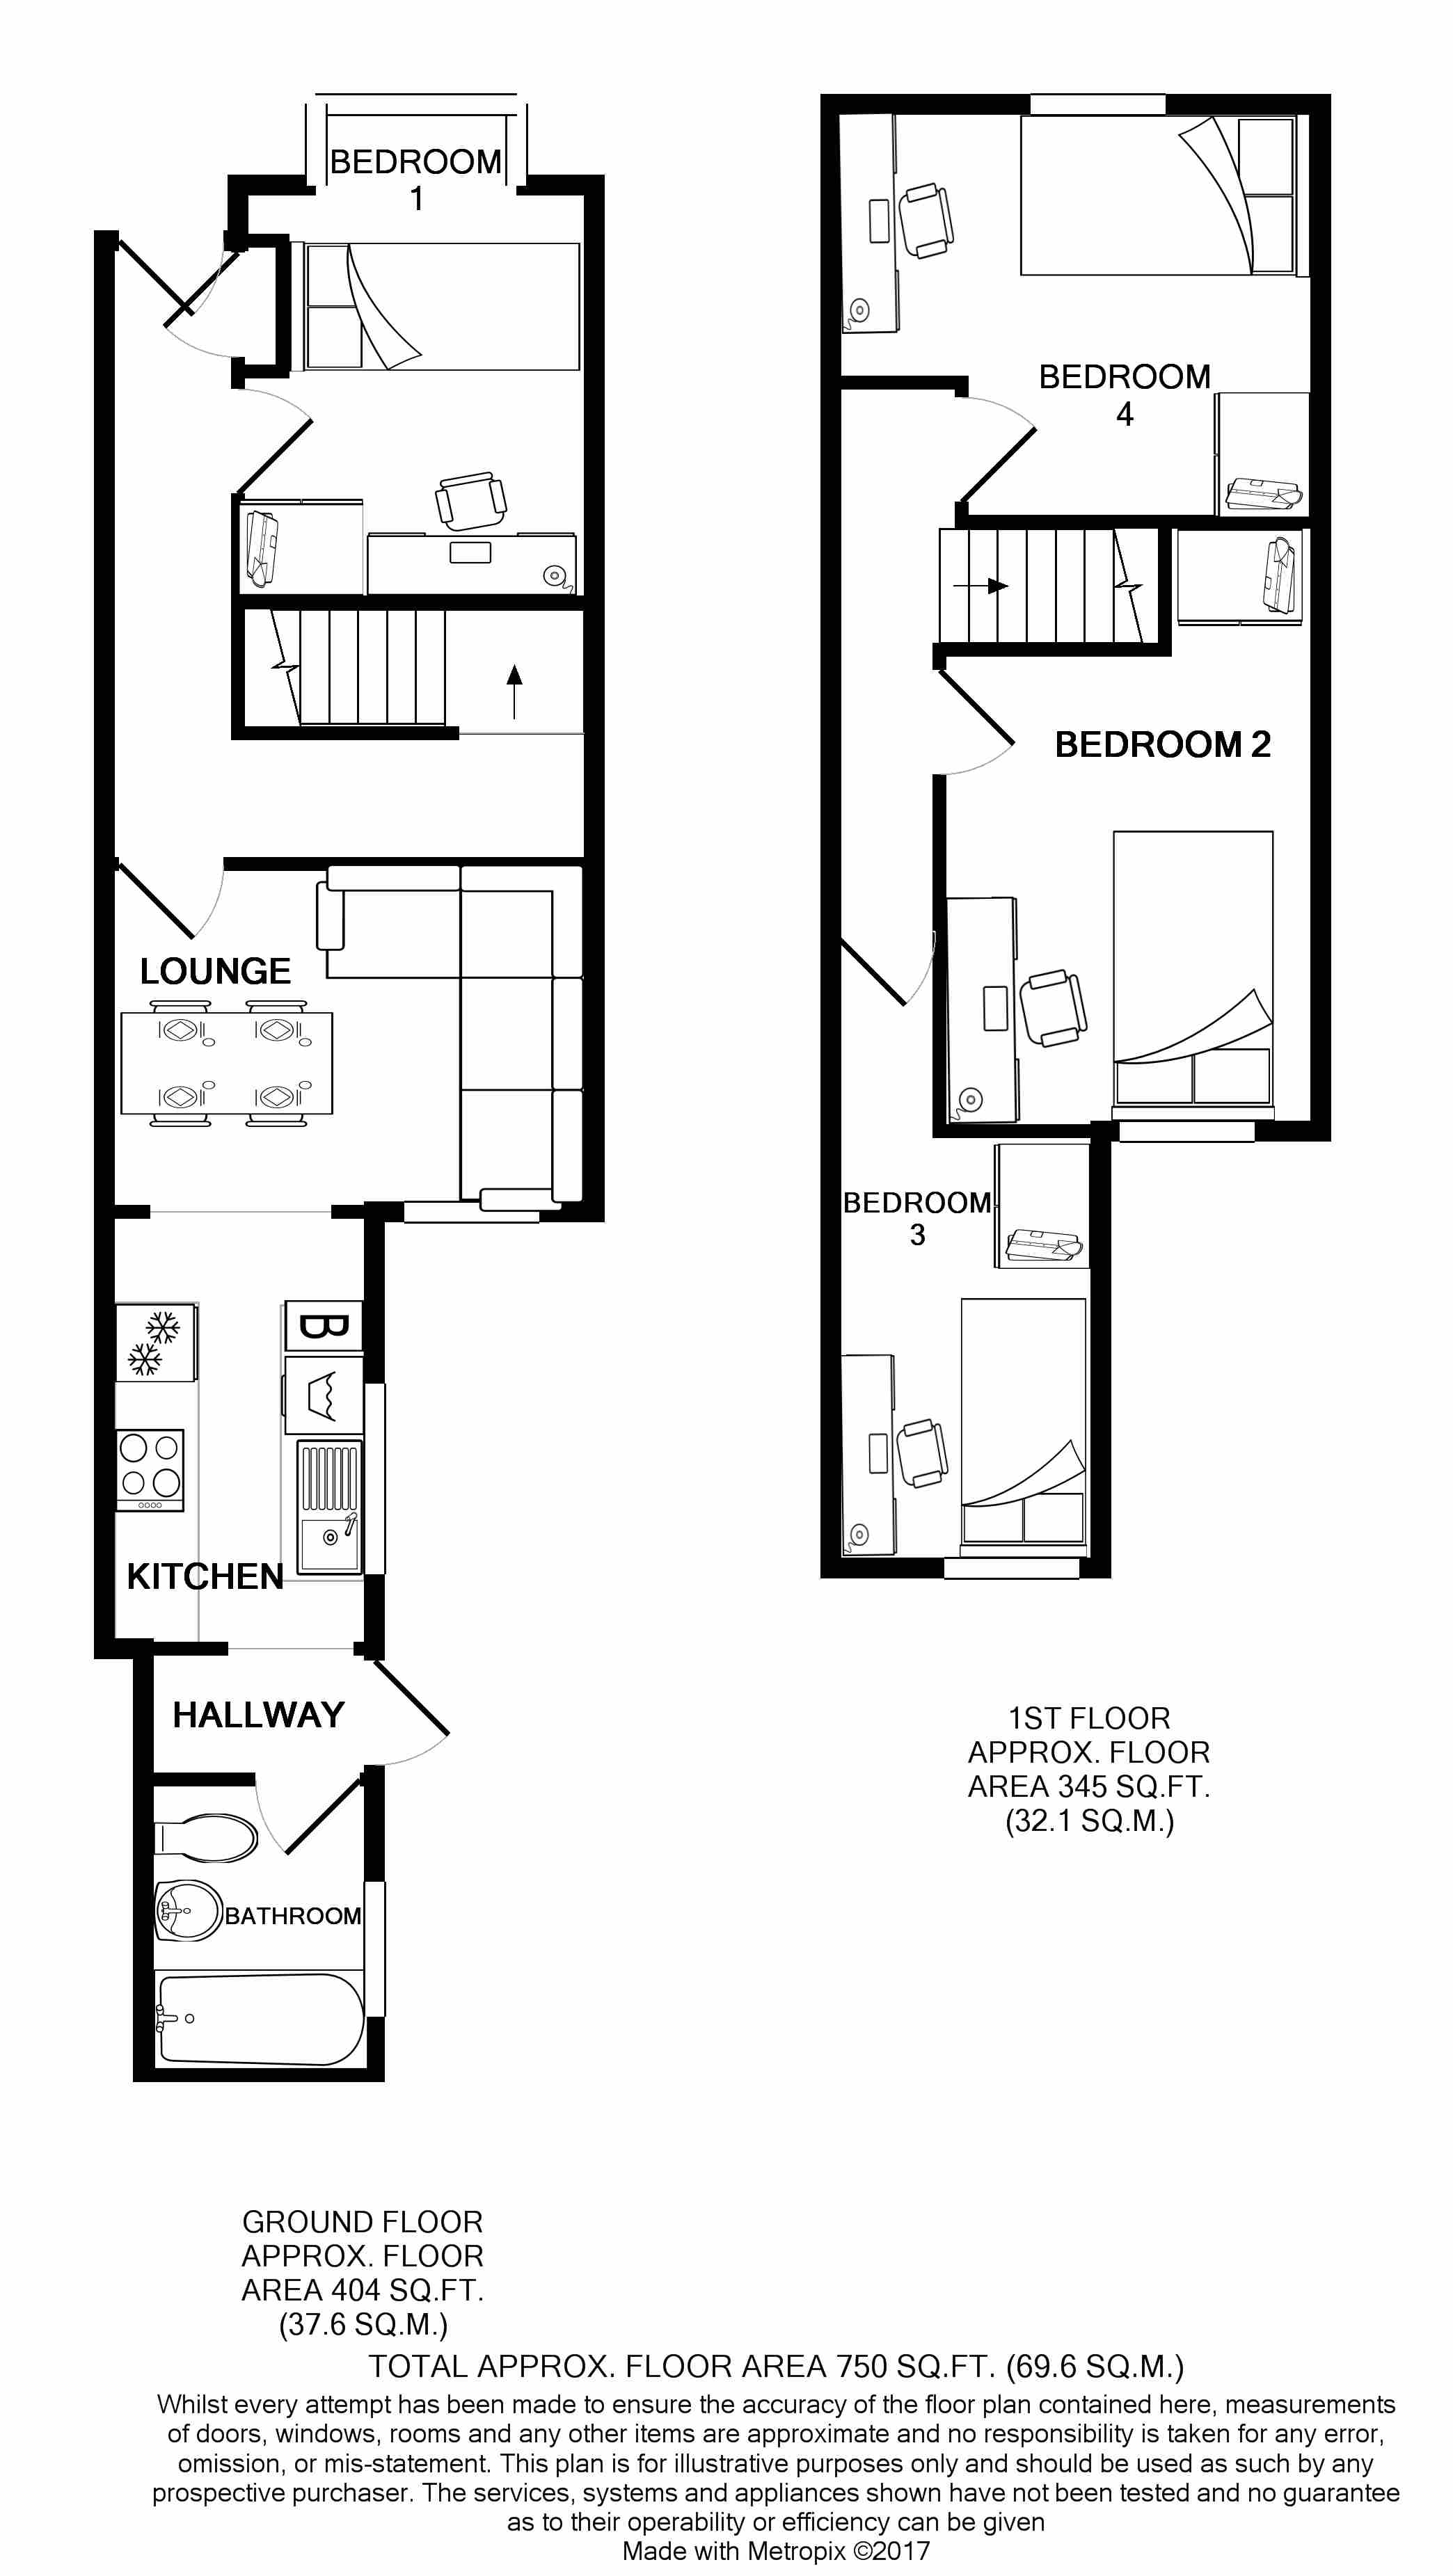 219 Leek Road Floorplans